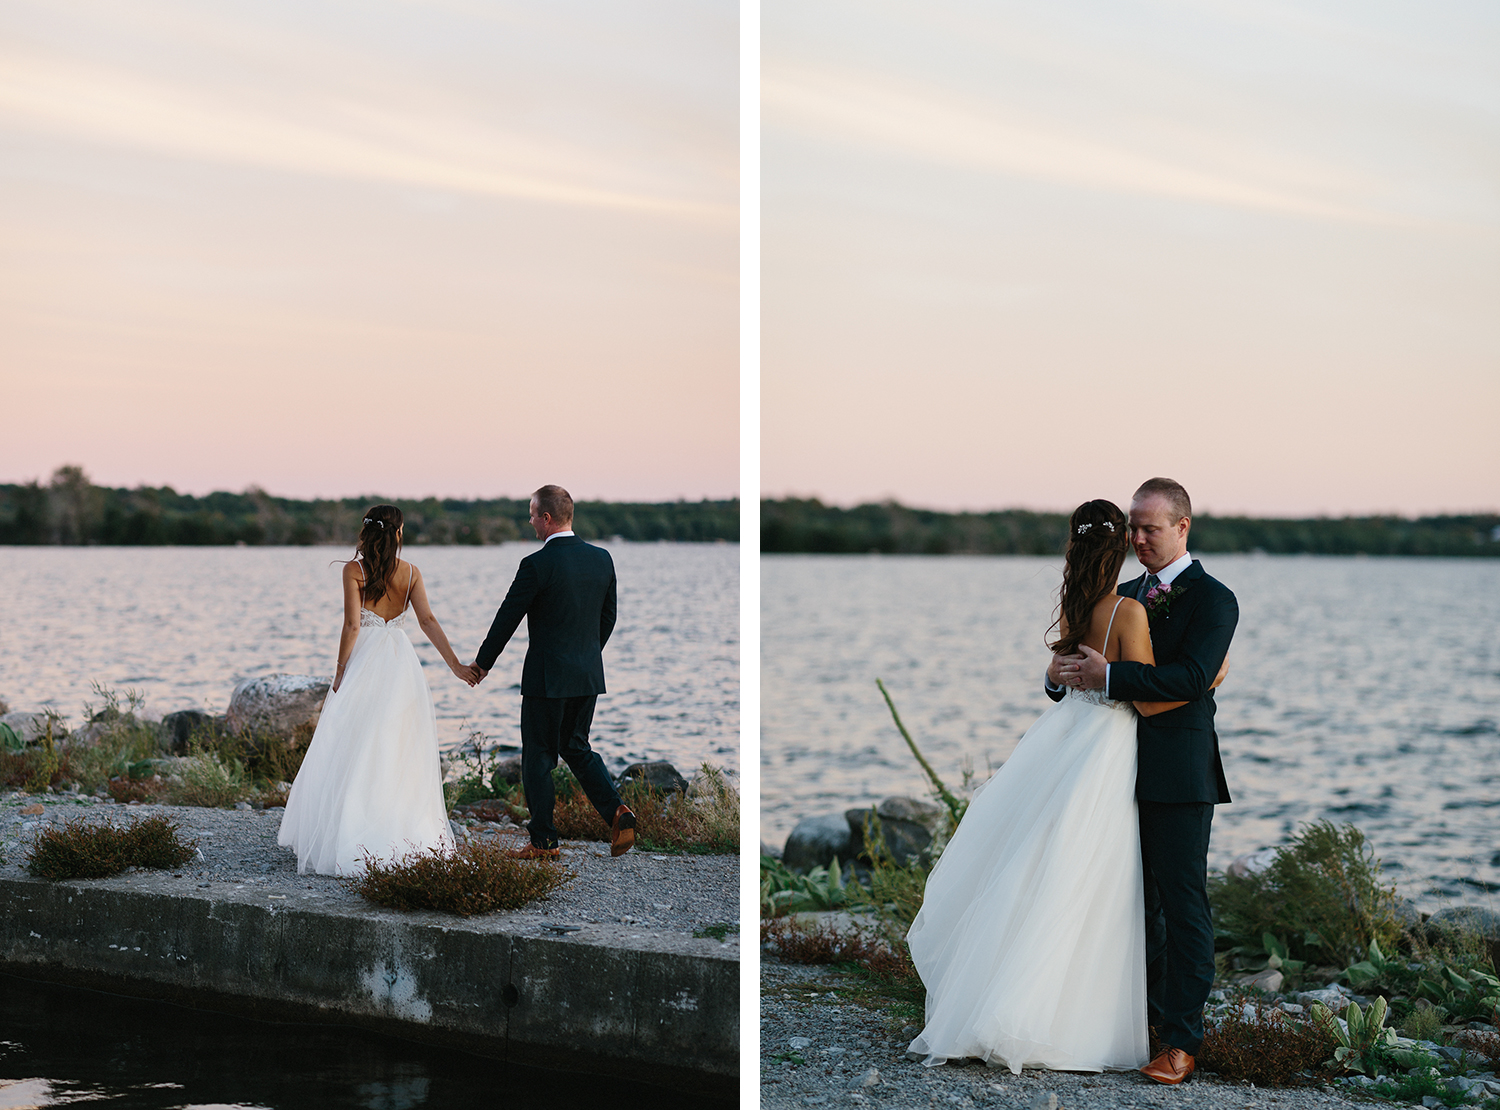 14-sunset-golden-hour-couples-portraits-romantic-moody-pink-sky-At-Eganridge-Resort-Venue-Muskoka-Ontario-Wedding-Photography-by-Ryanne-Hollies-Photography-Toronto-Documentary-Wedding-Photographer.jpg